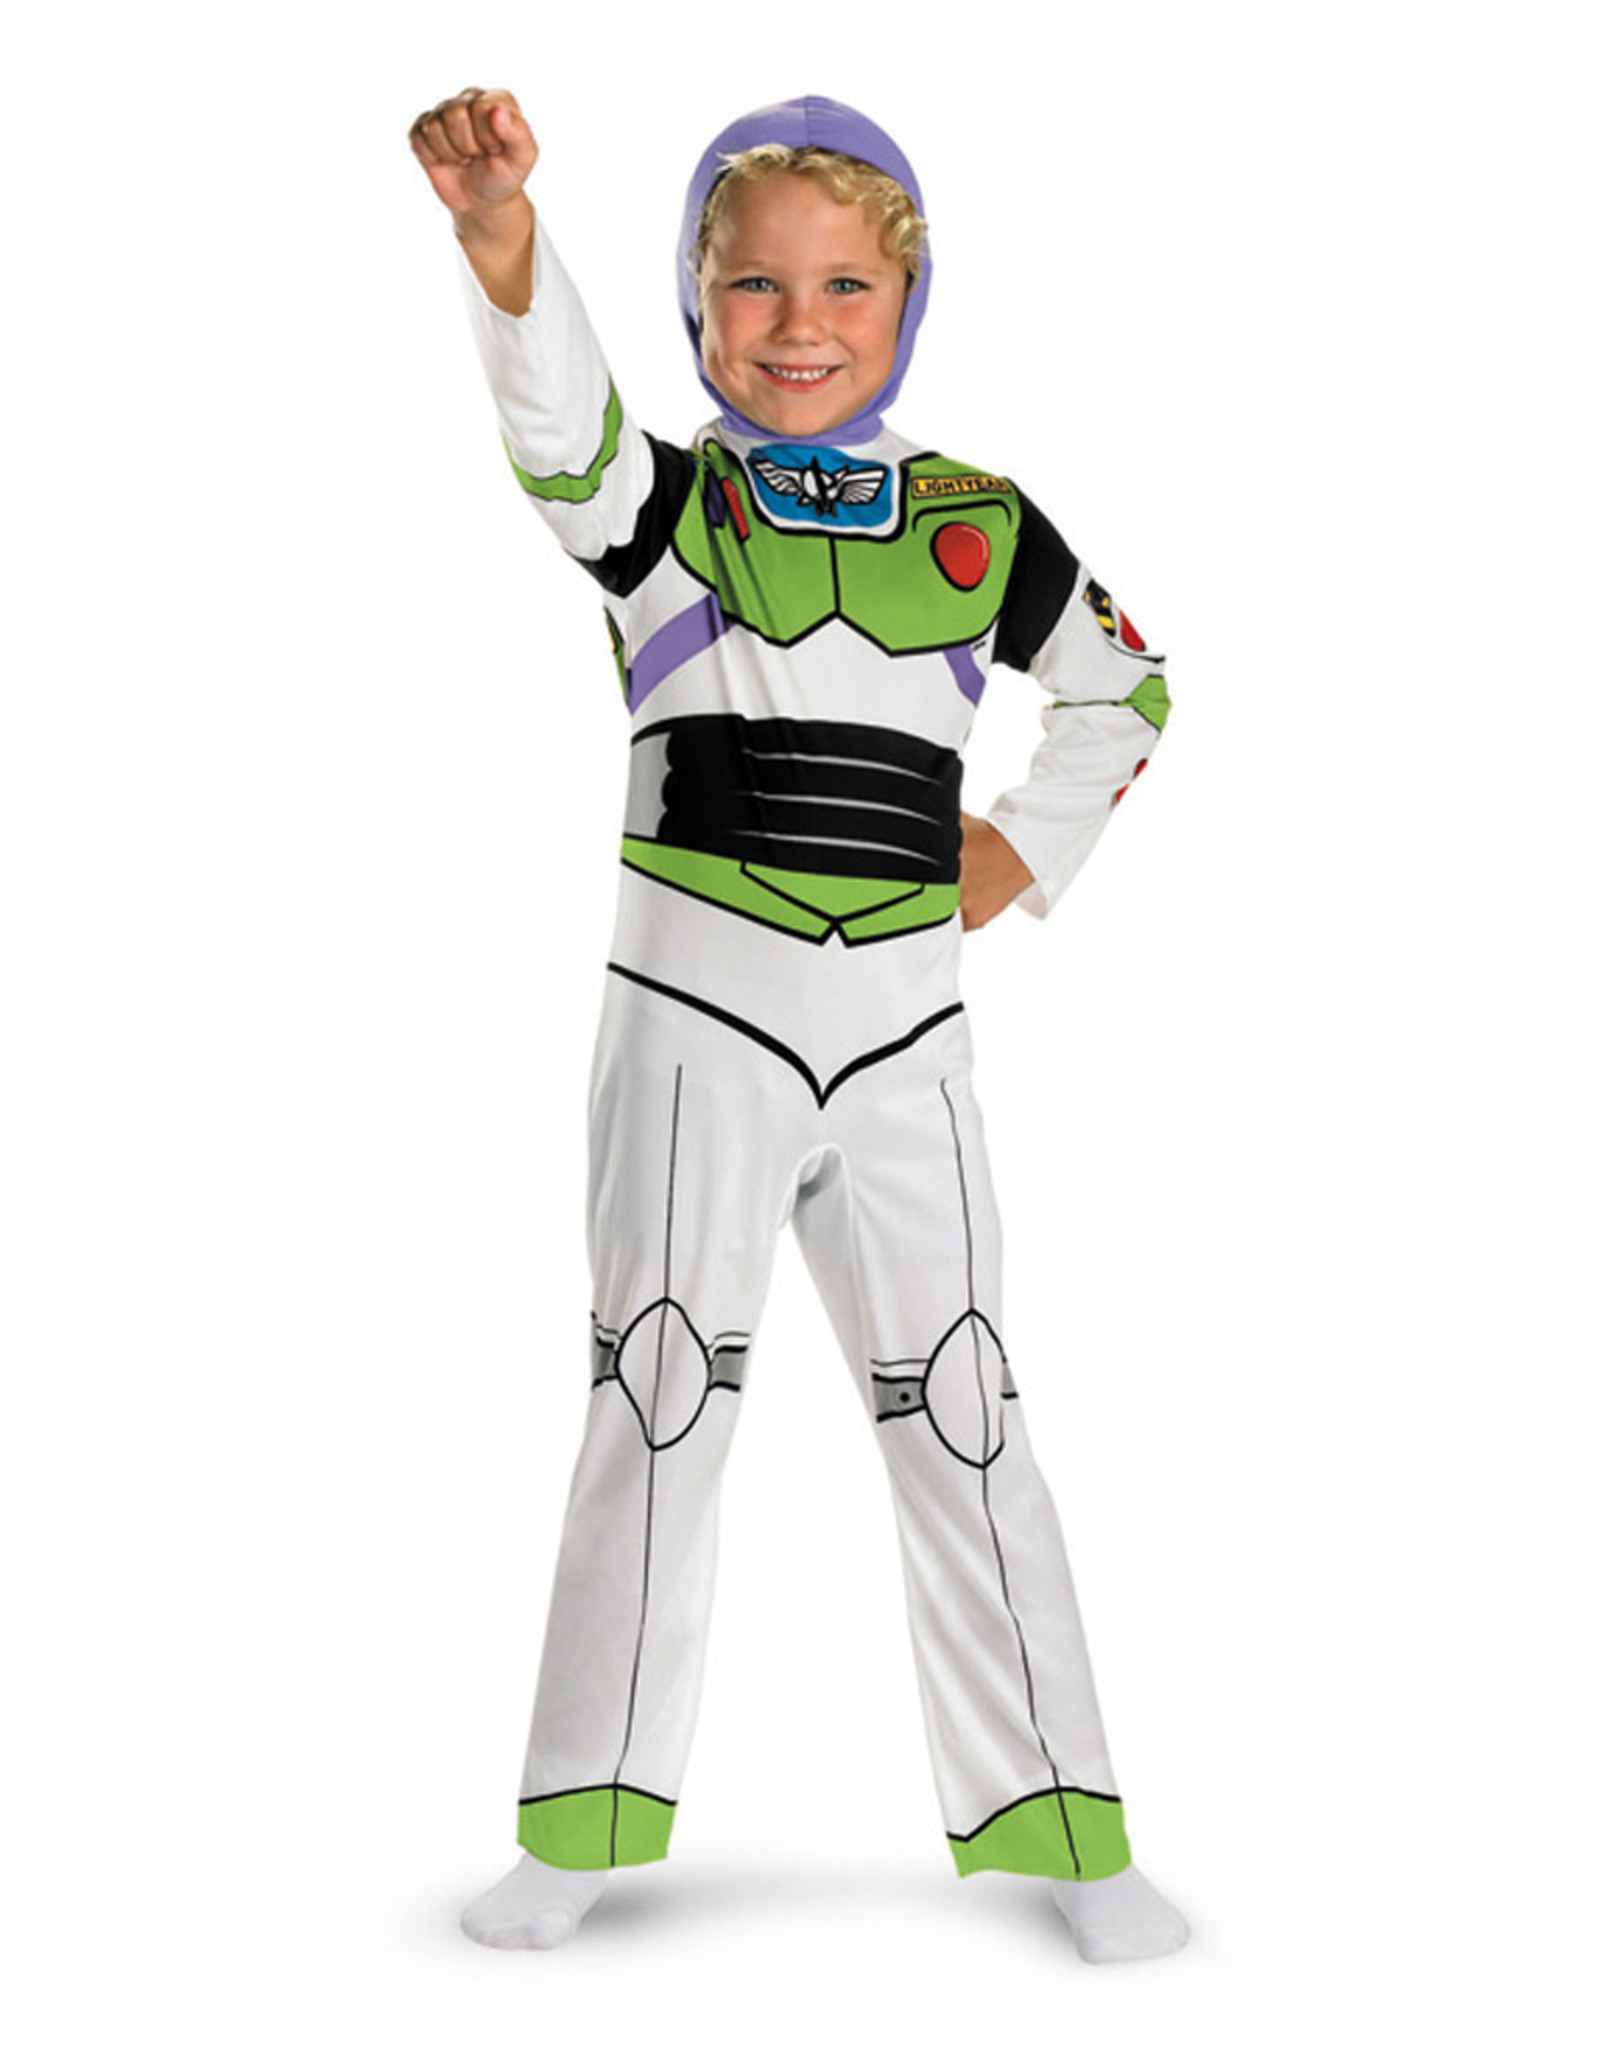 Buzz Lightyear Costume - Boys